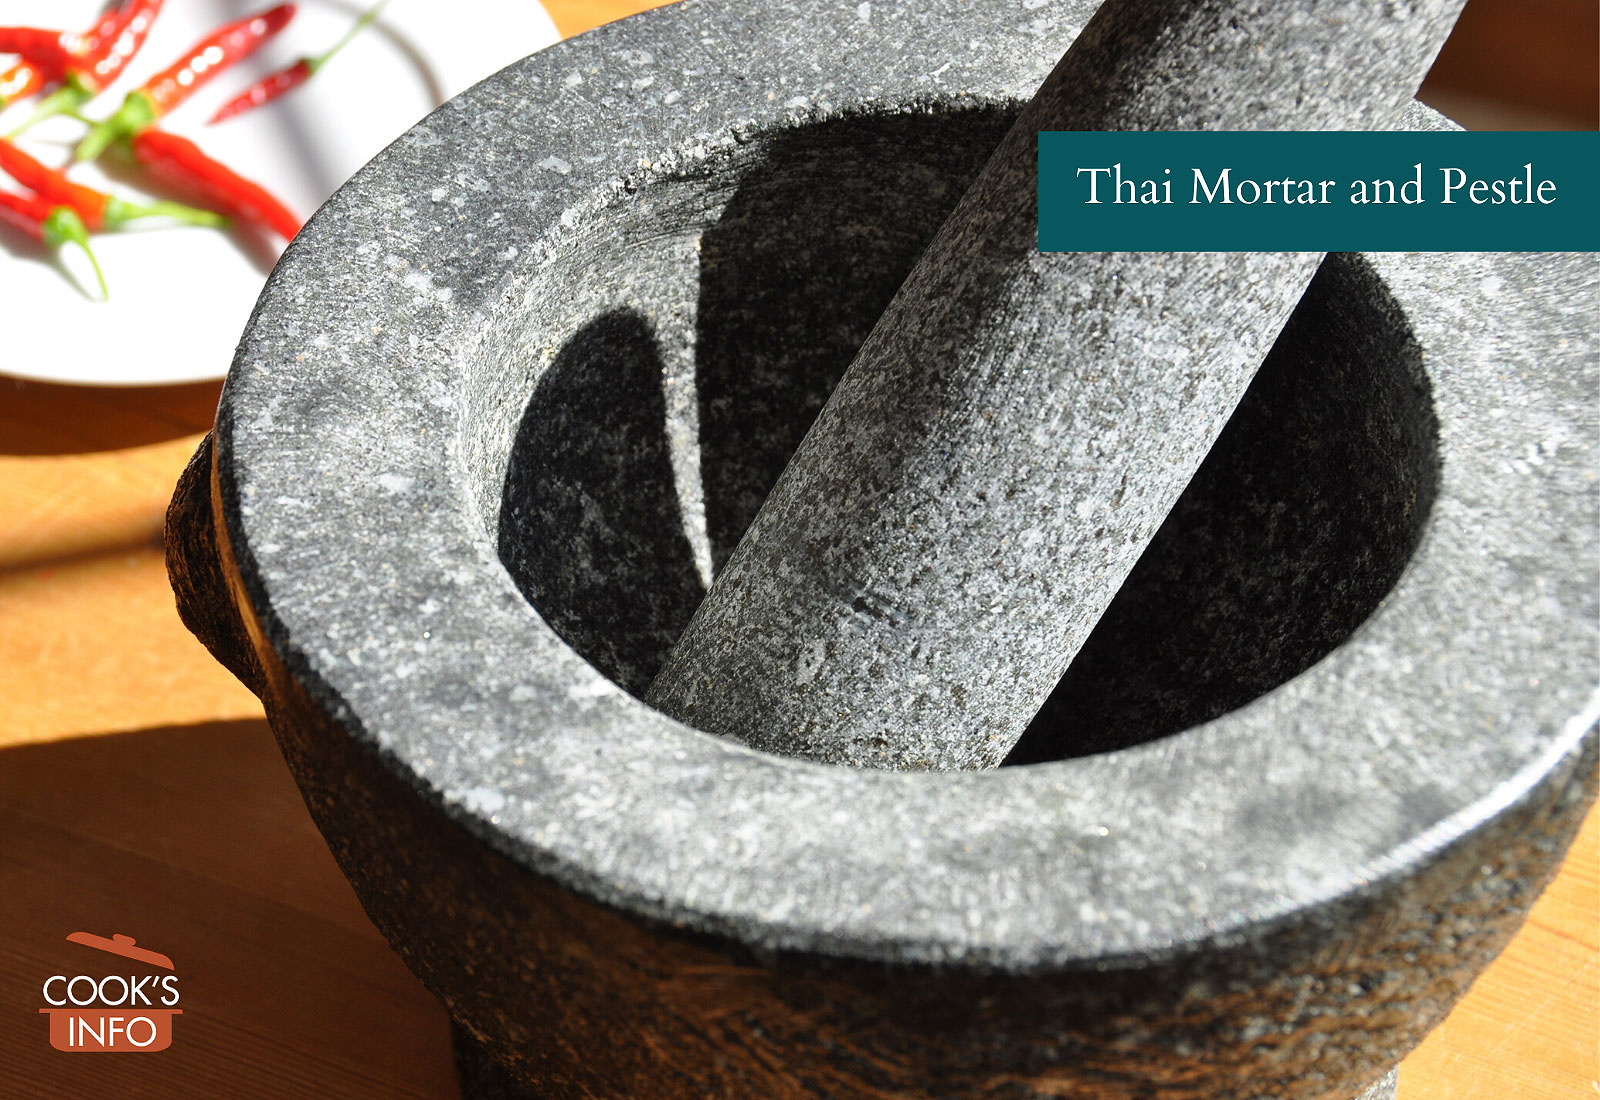 Stone Thai mortar and pestle